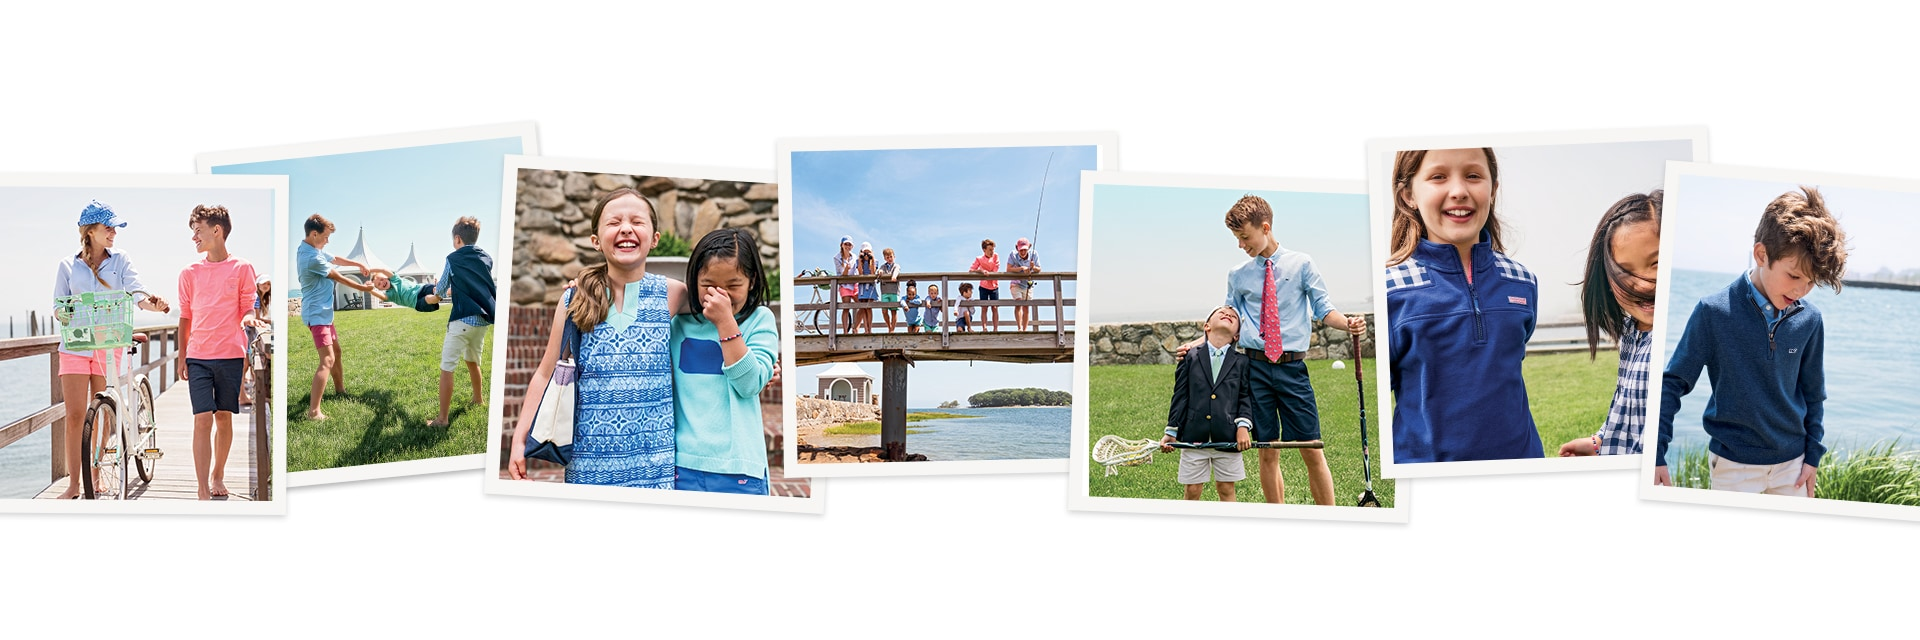 photos of kids going back to school in vineyard vines clothing